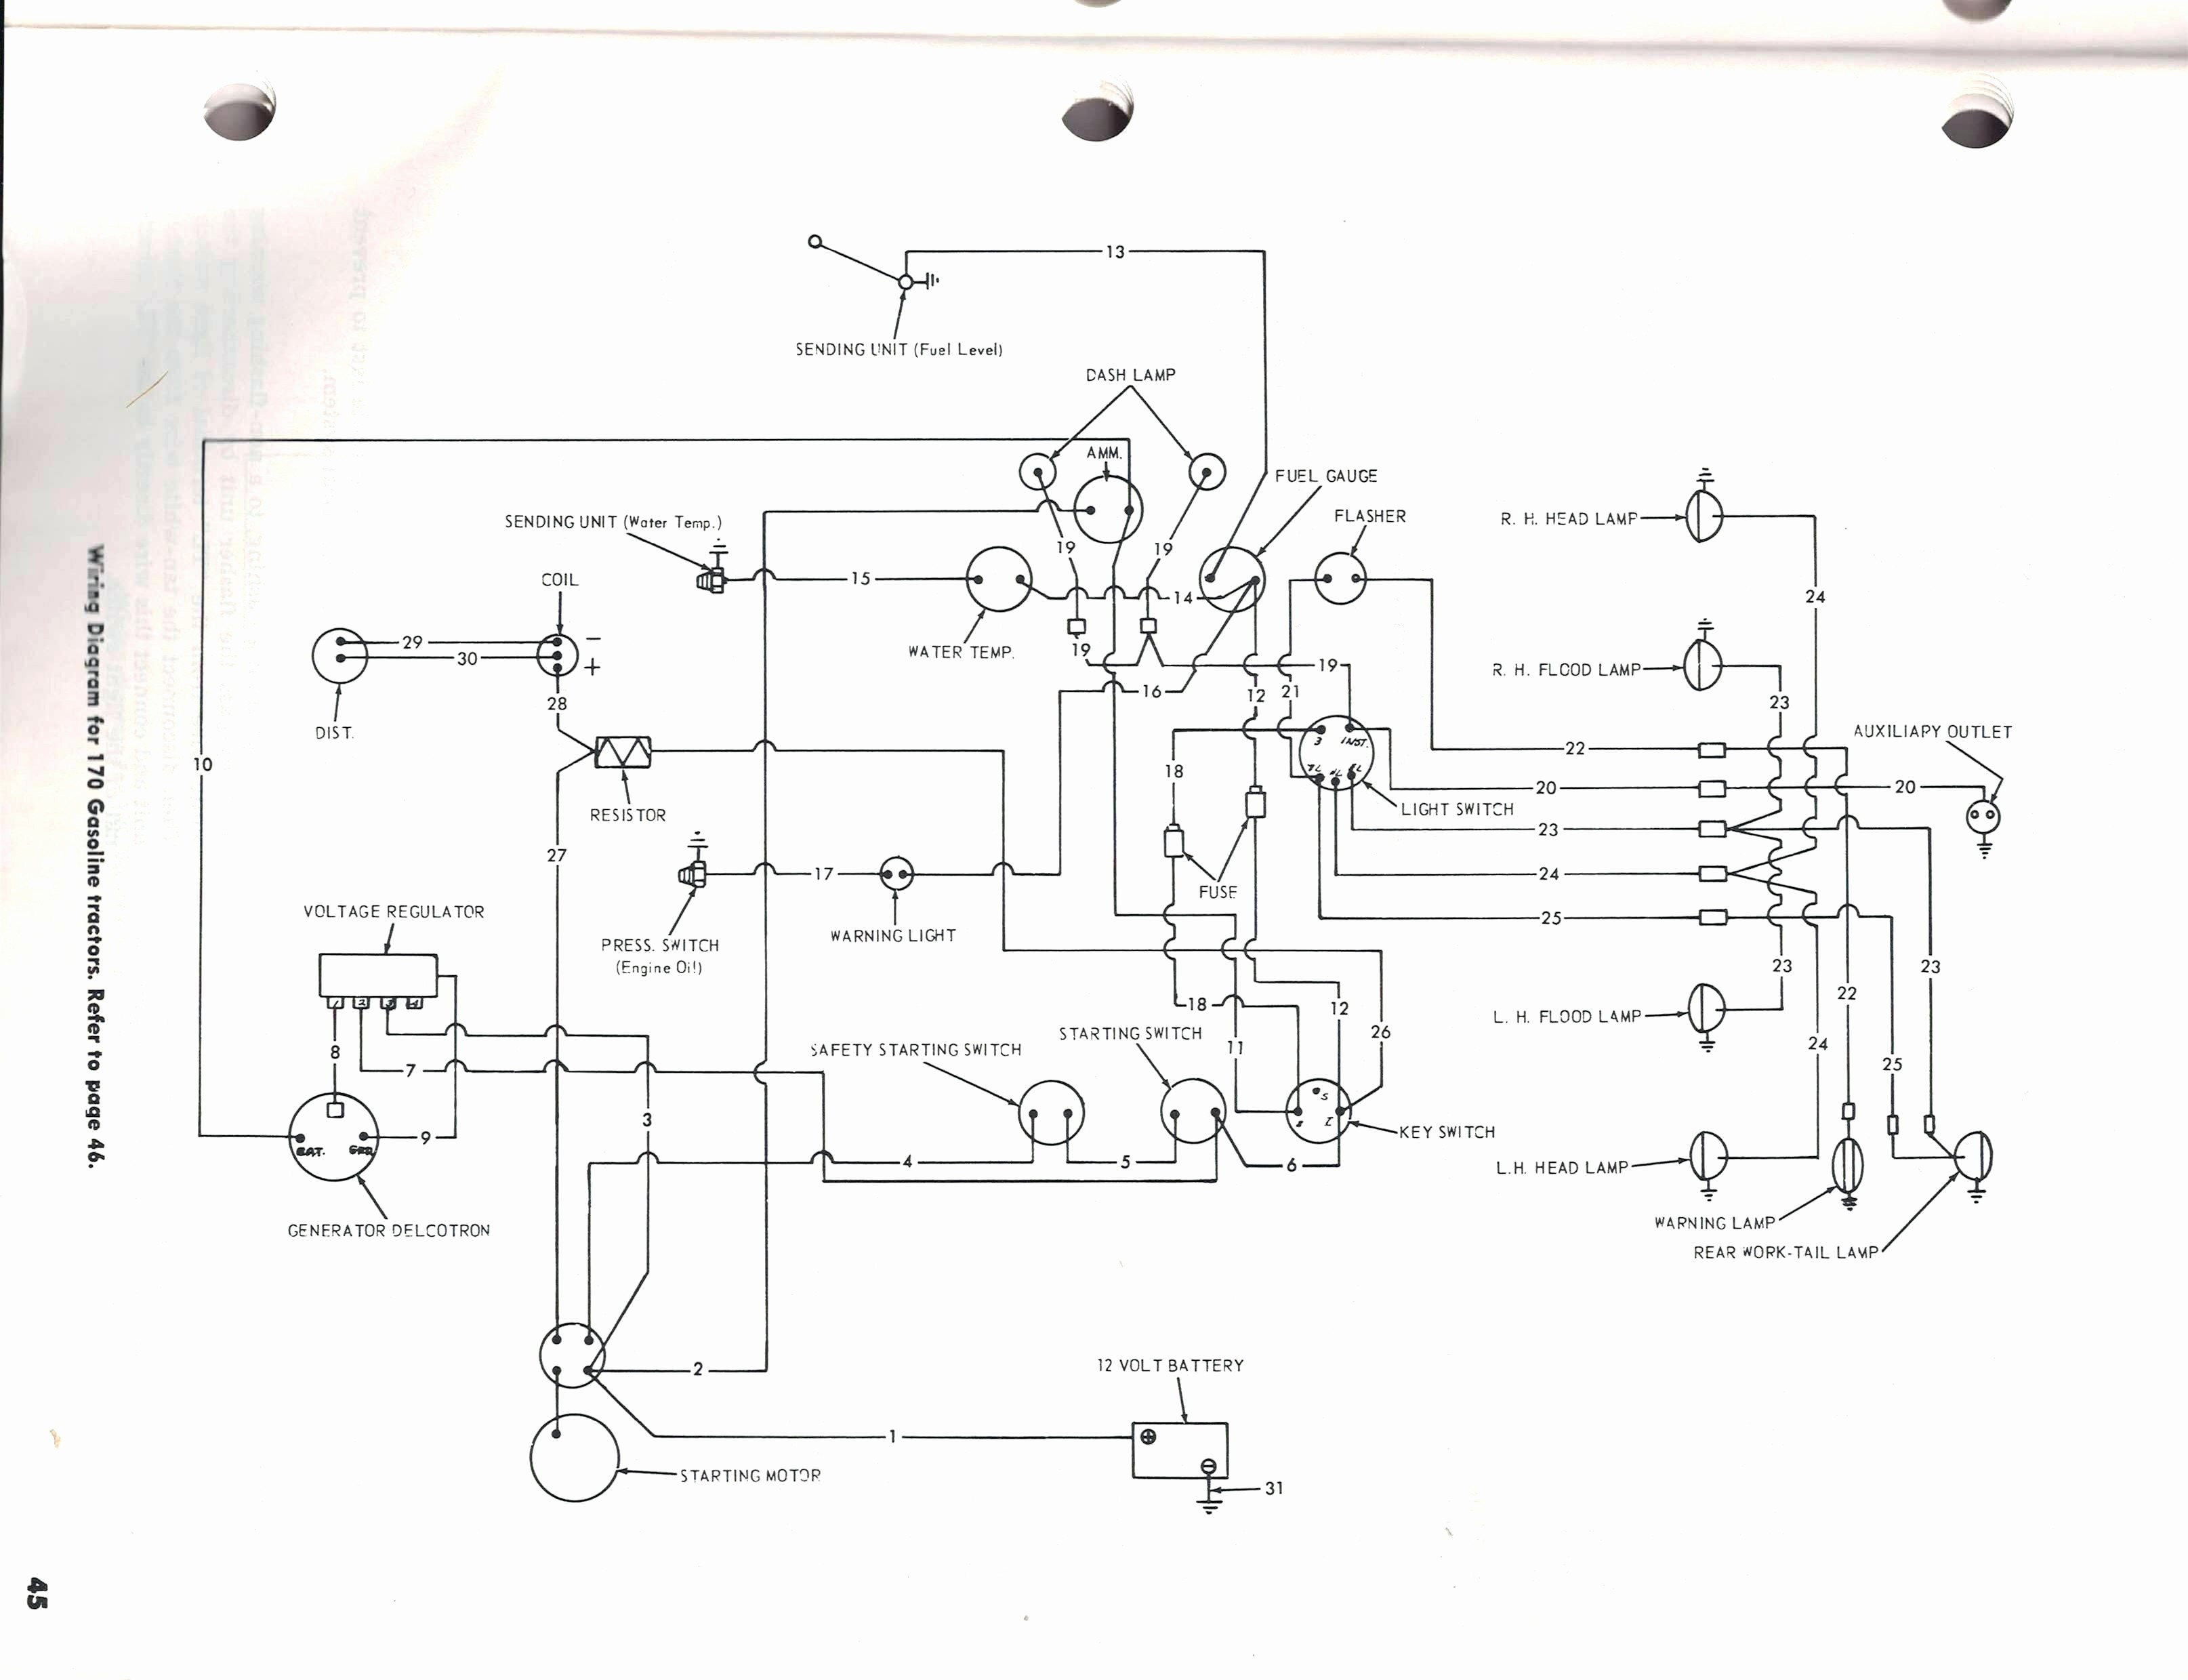 5600 ford tractor wiring diagram wiring diagram ford 800 tractor wiring diagram 5600 ford tractor wiring diagram free picture wiring diagram1963 ford 2000 tractor wiring diagram wiring diagram